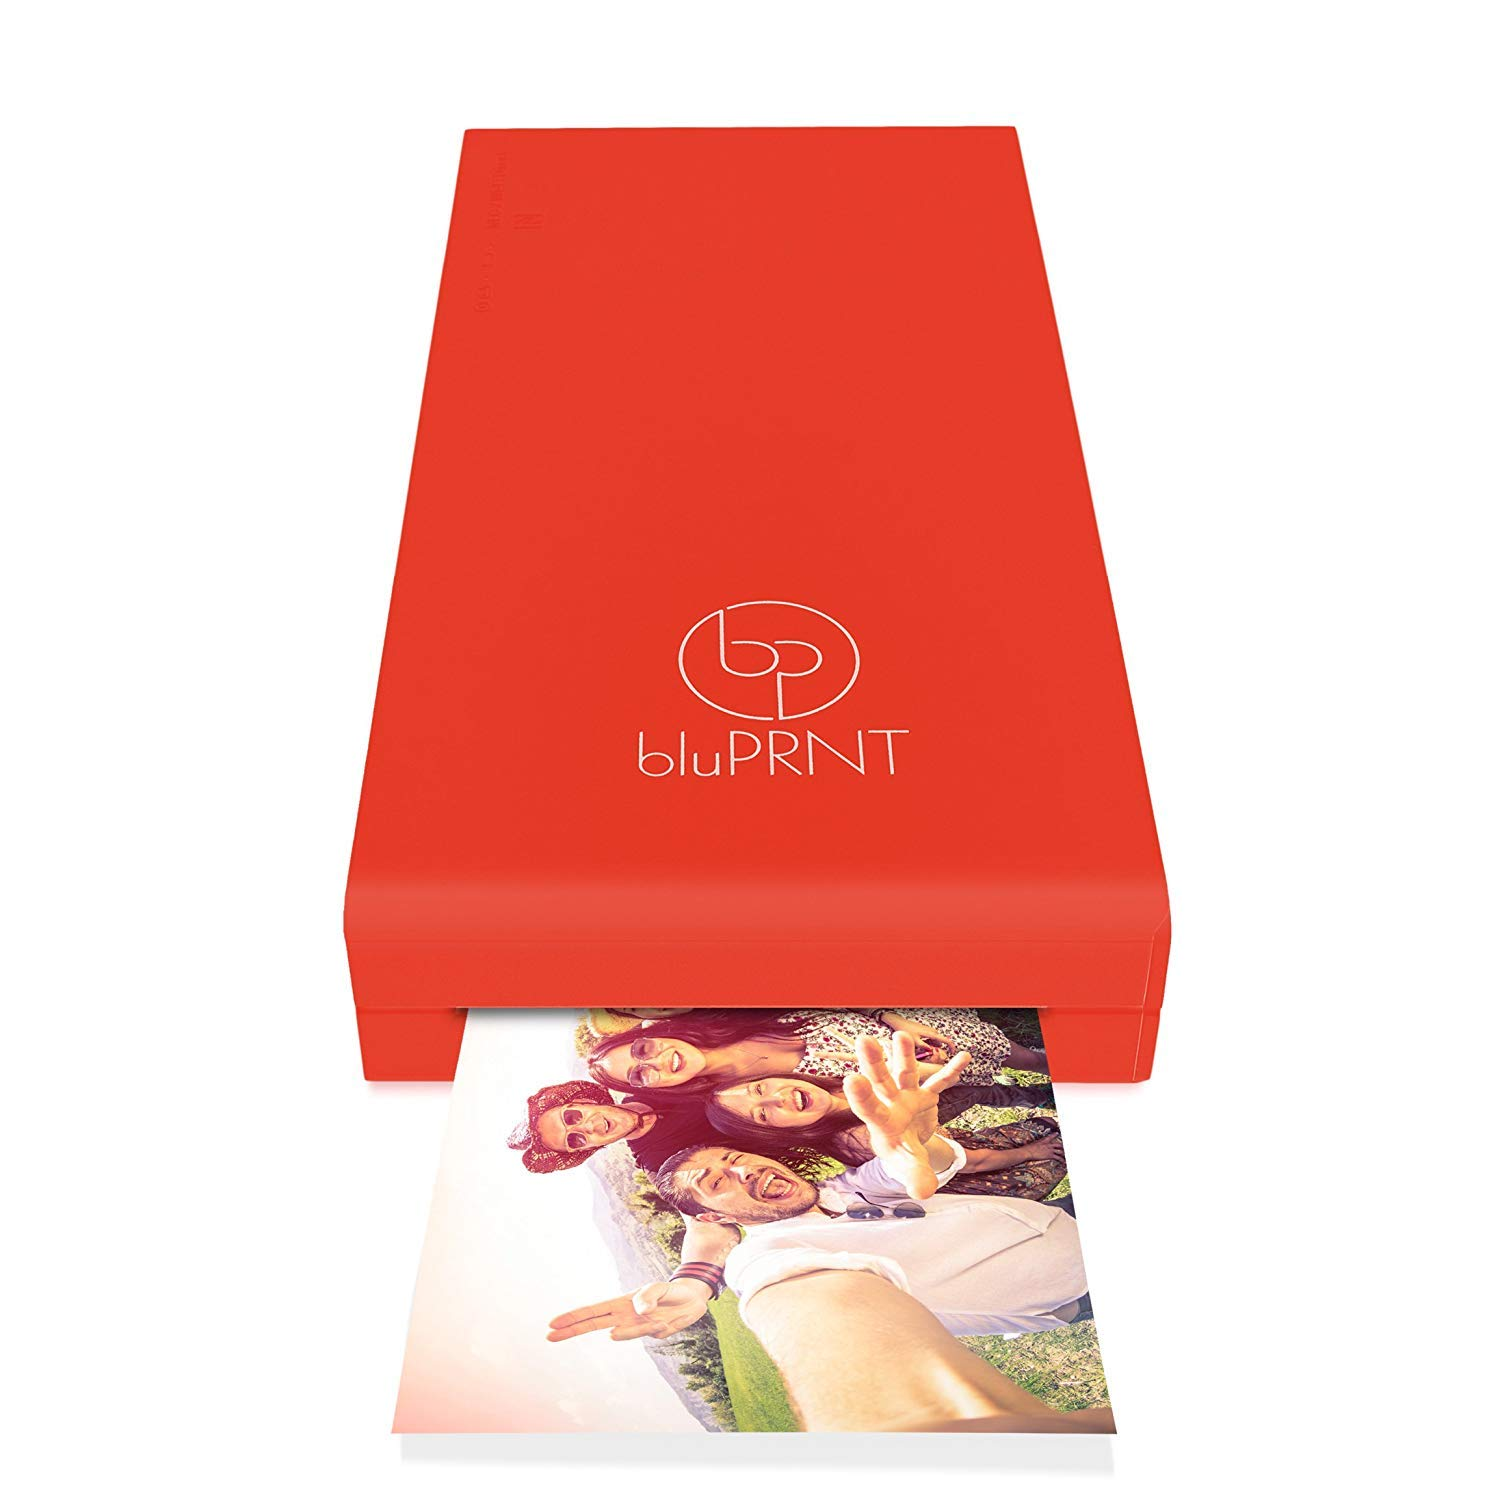 bluPRNT Portable Instant Printer for Android Devices with NFC and WiFi - Android Only (Red)